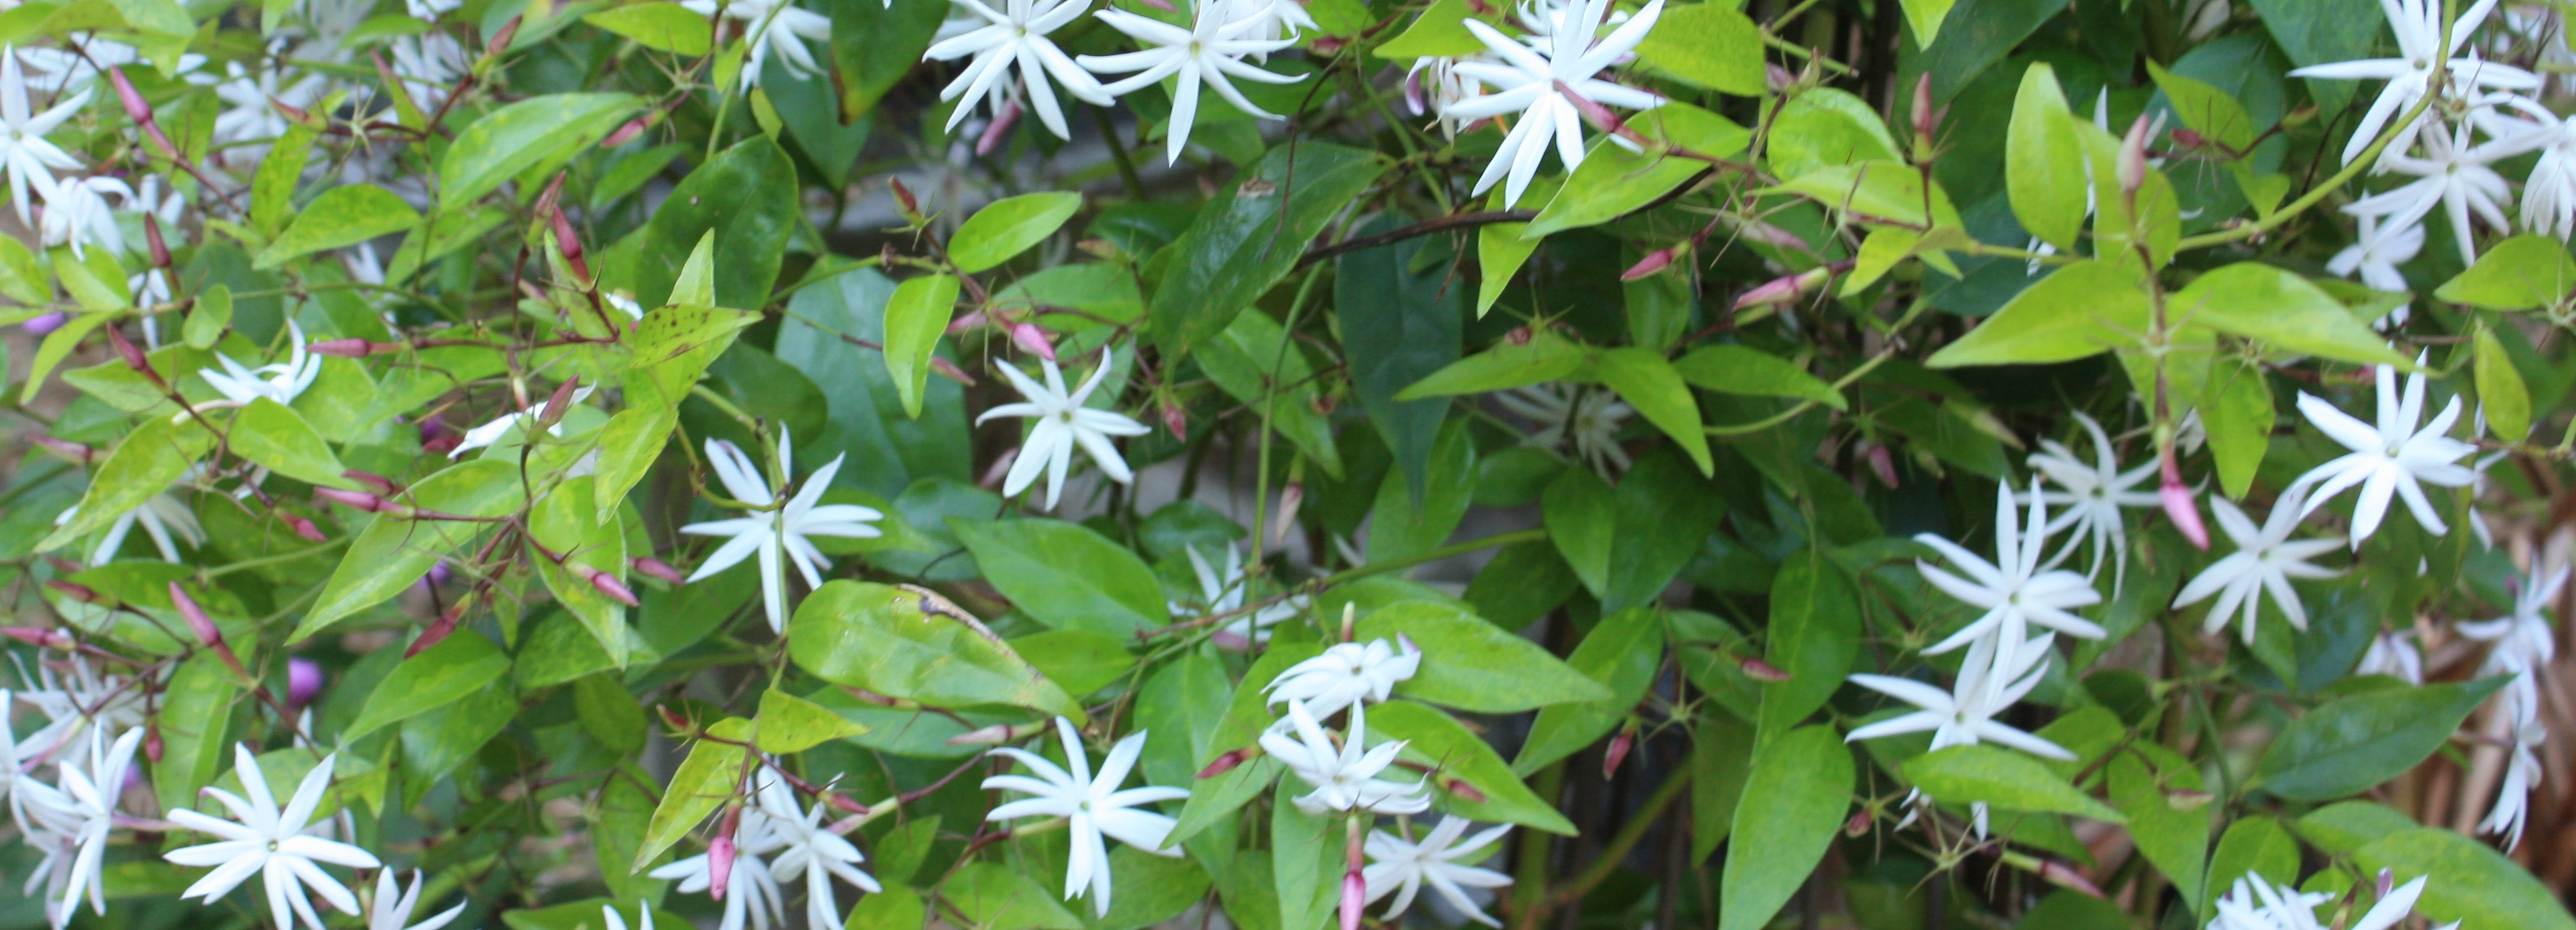 Jasmine essential oil health benefits get jazzed izmirmasajfo